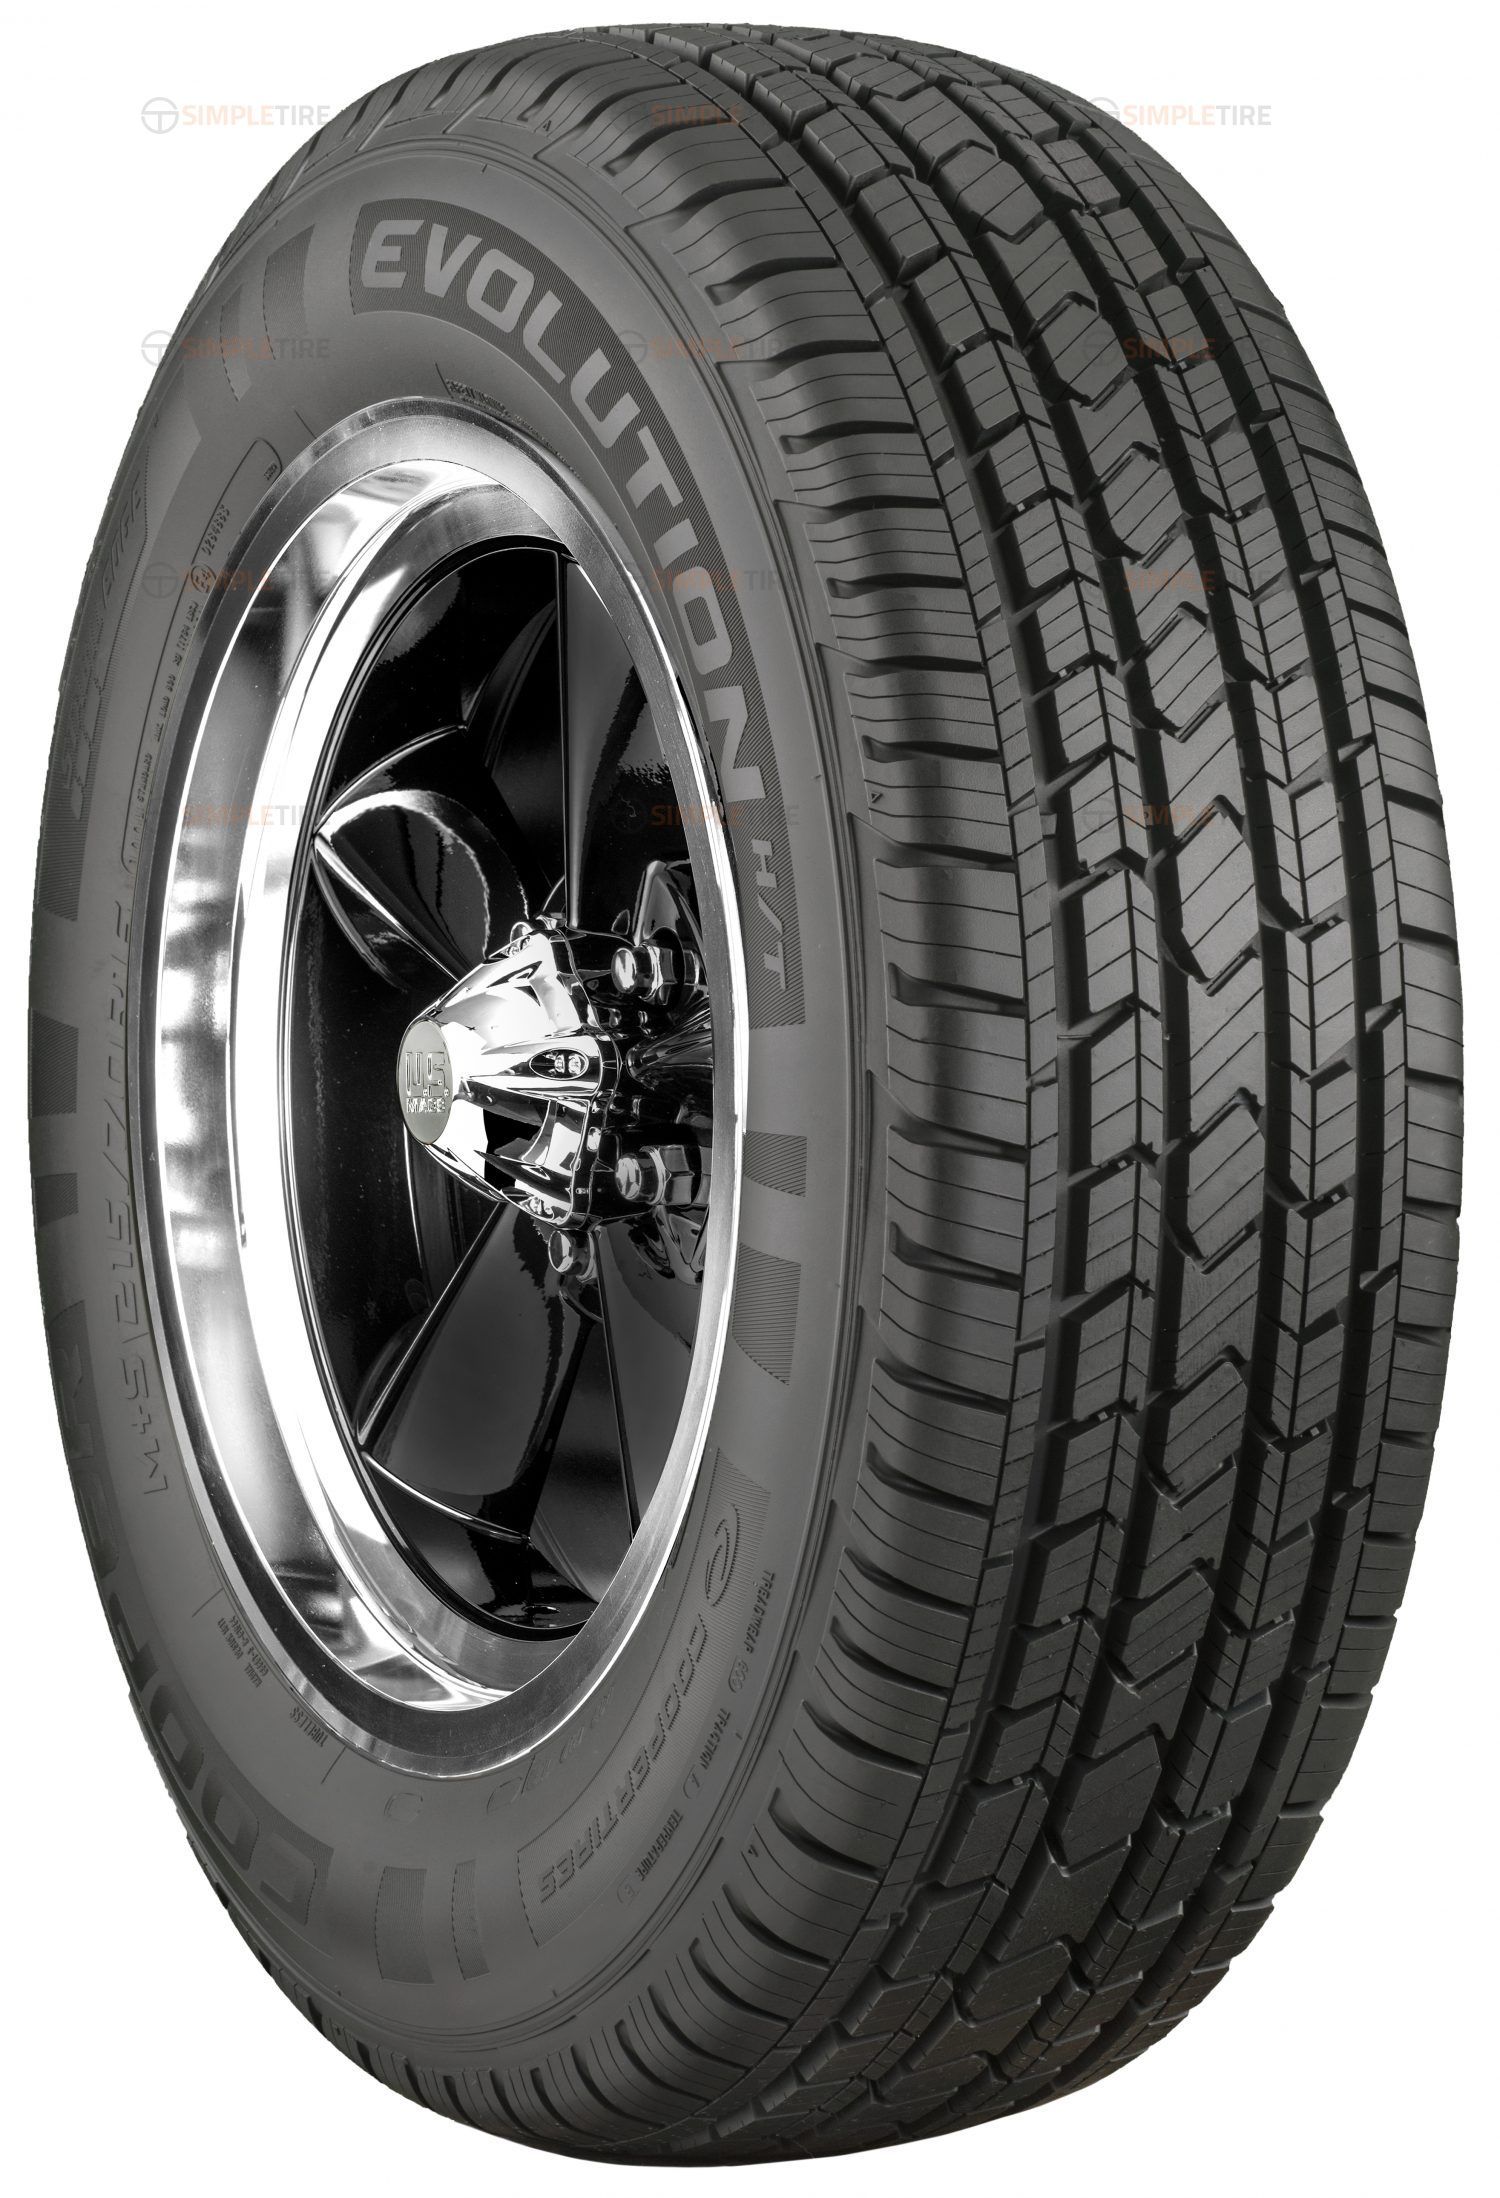 90000029097 235/70R16 Evolution HT Cooper